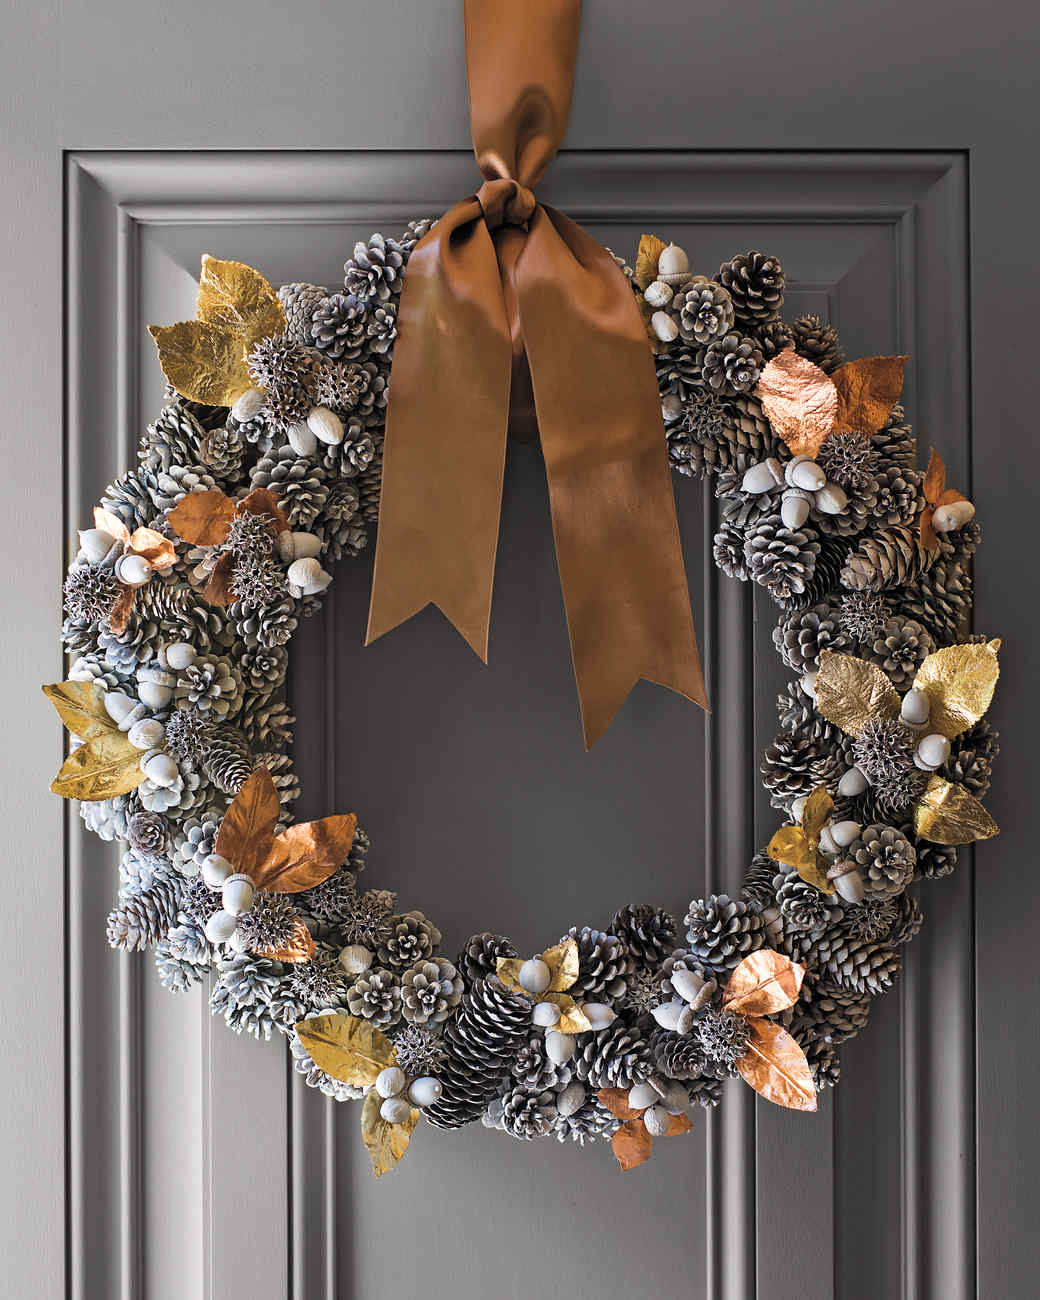 pinecone-wreath-20691-md110592.jpg